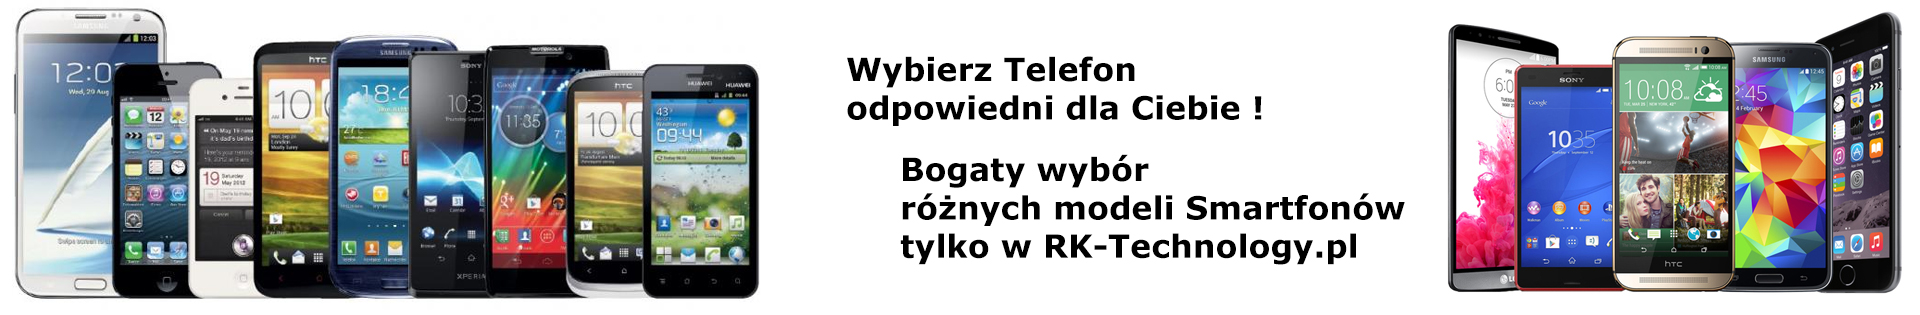 RK-Technology.pl